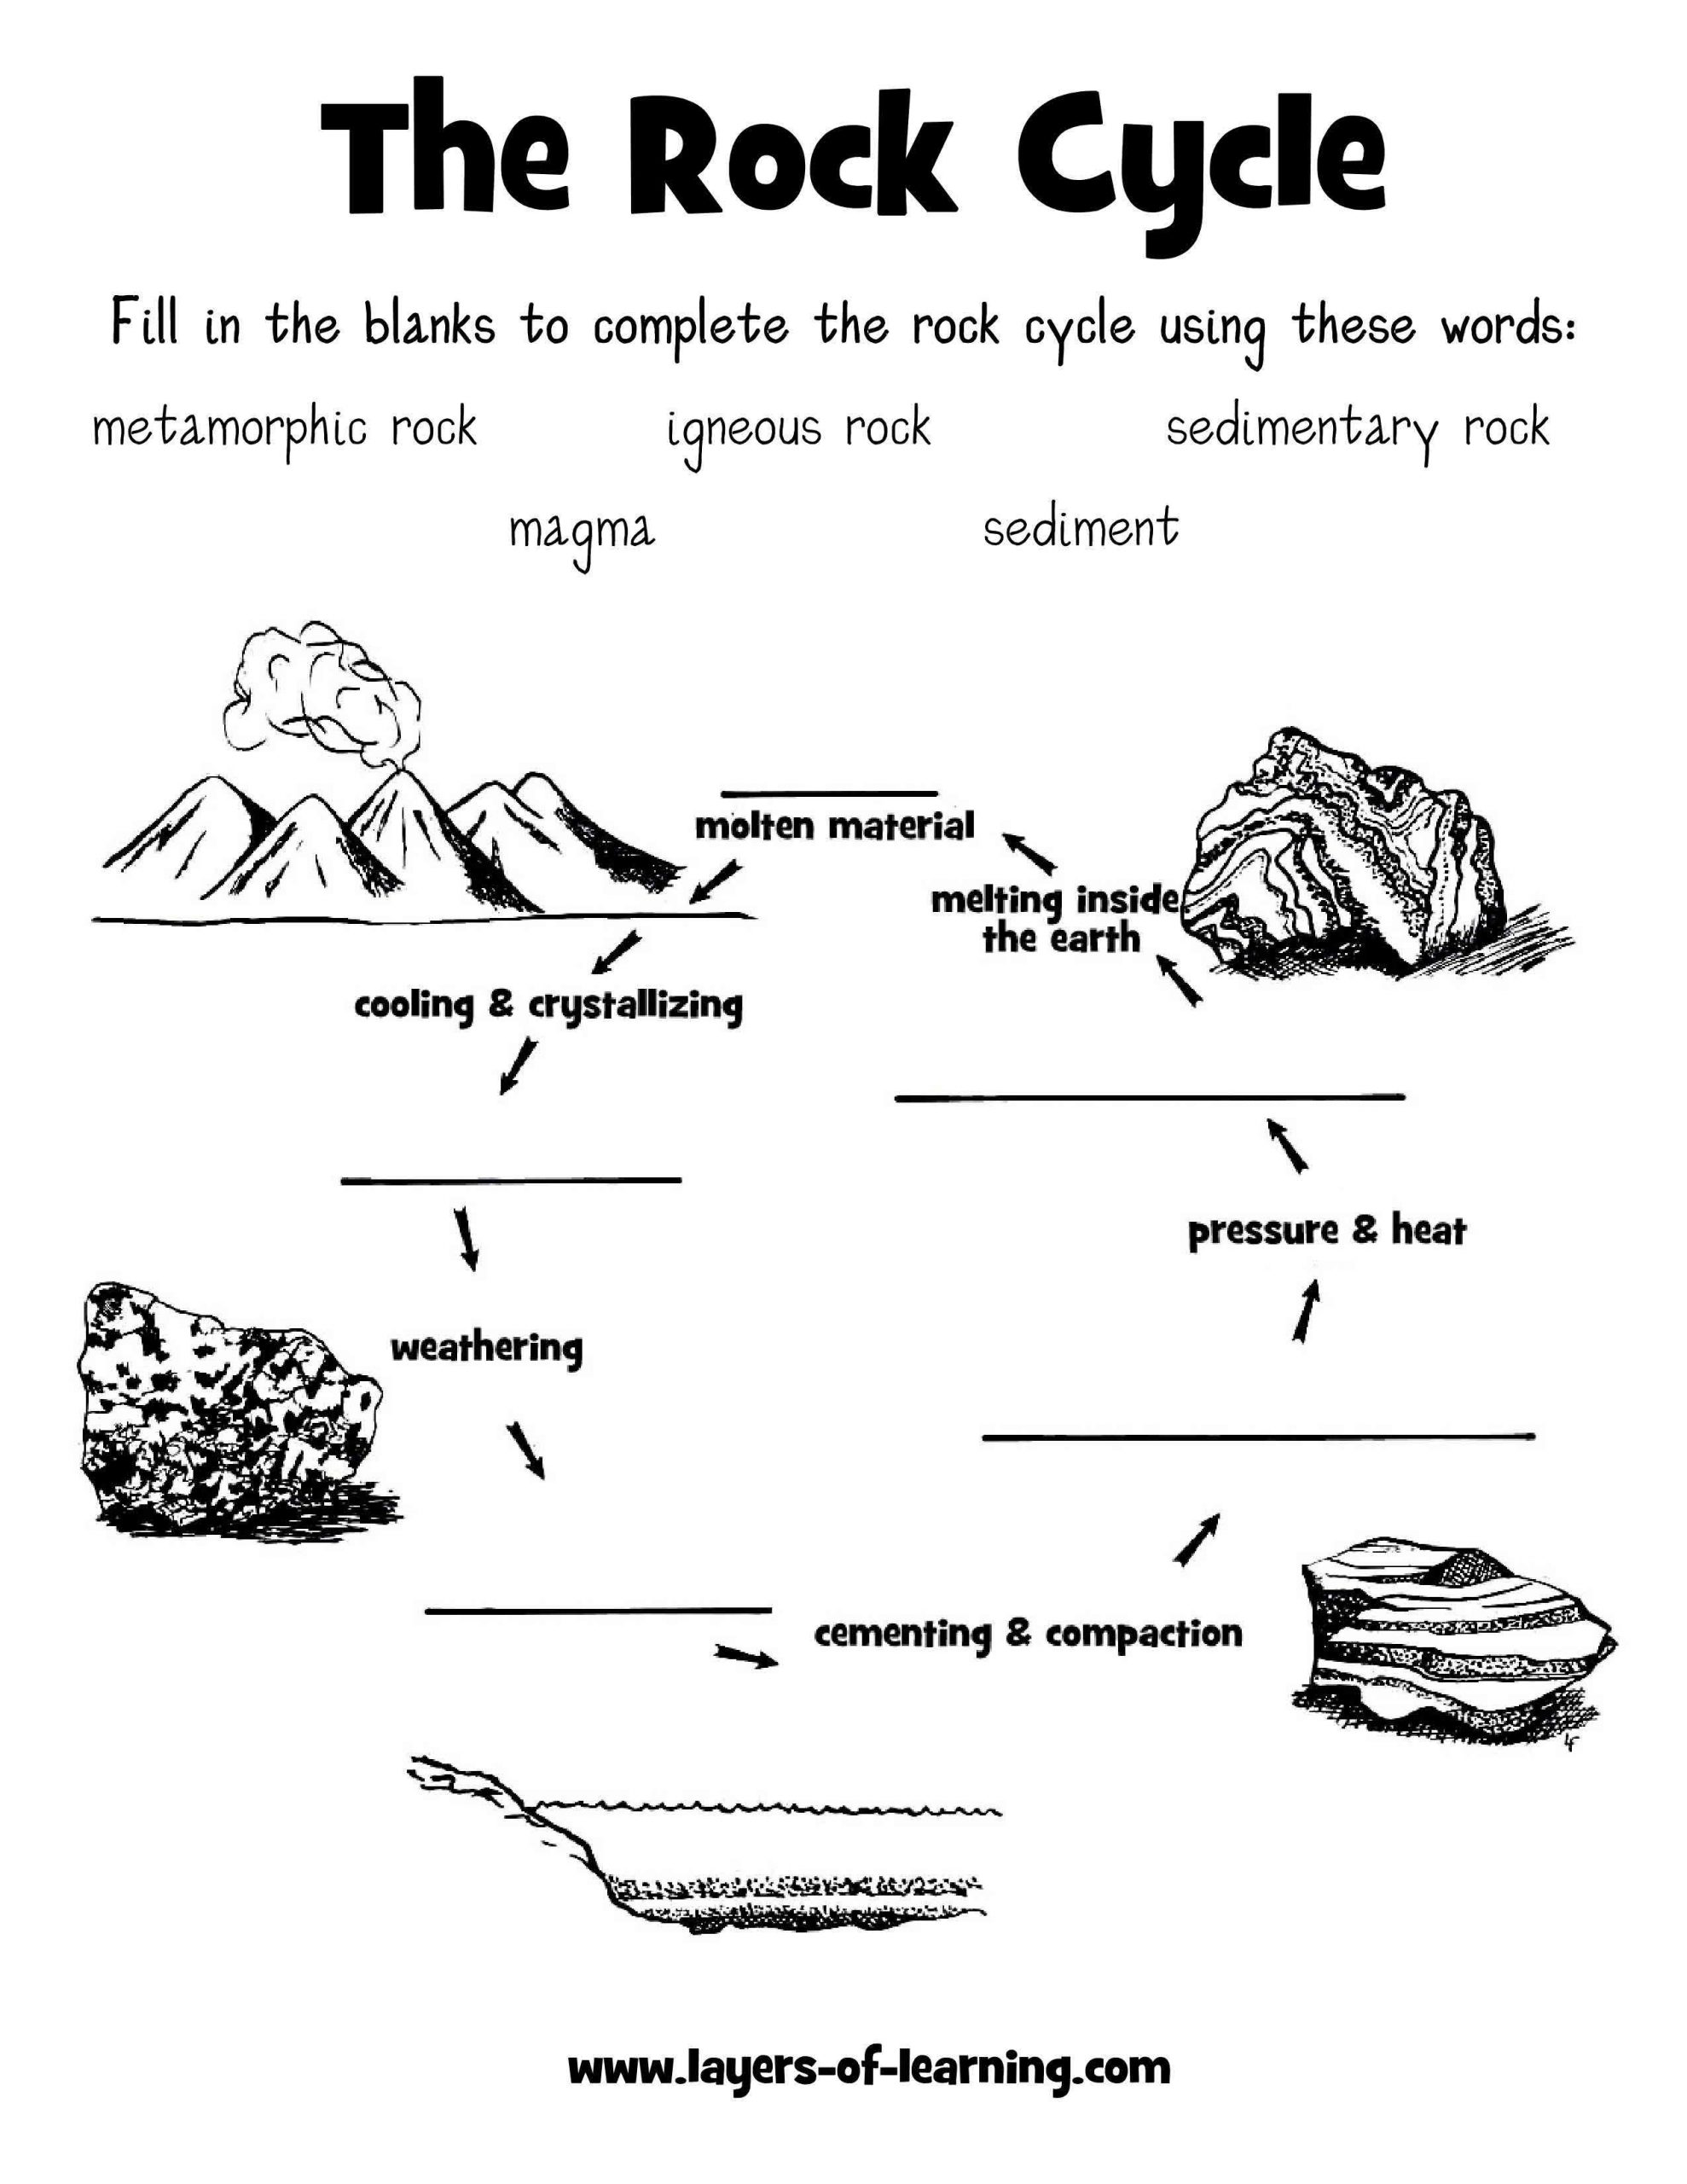 Middle School Science Worksheets Pdf Rock Cycle Worksheet Layers Of Learning